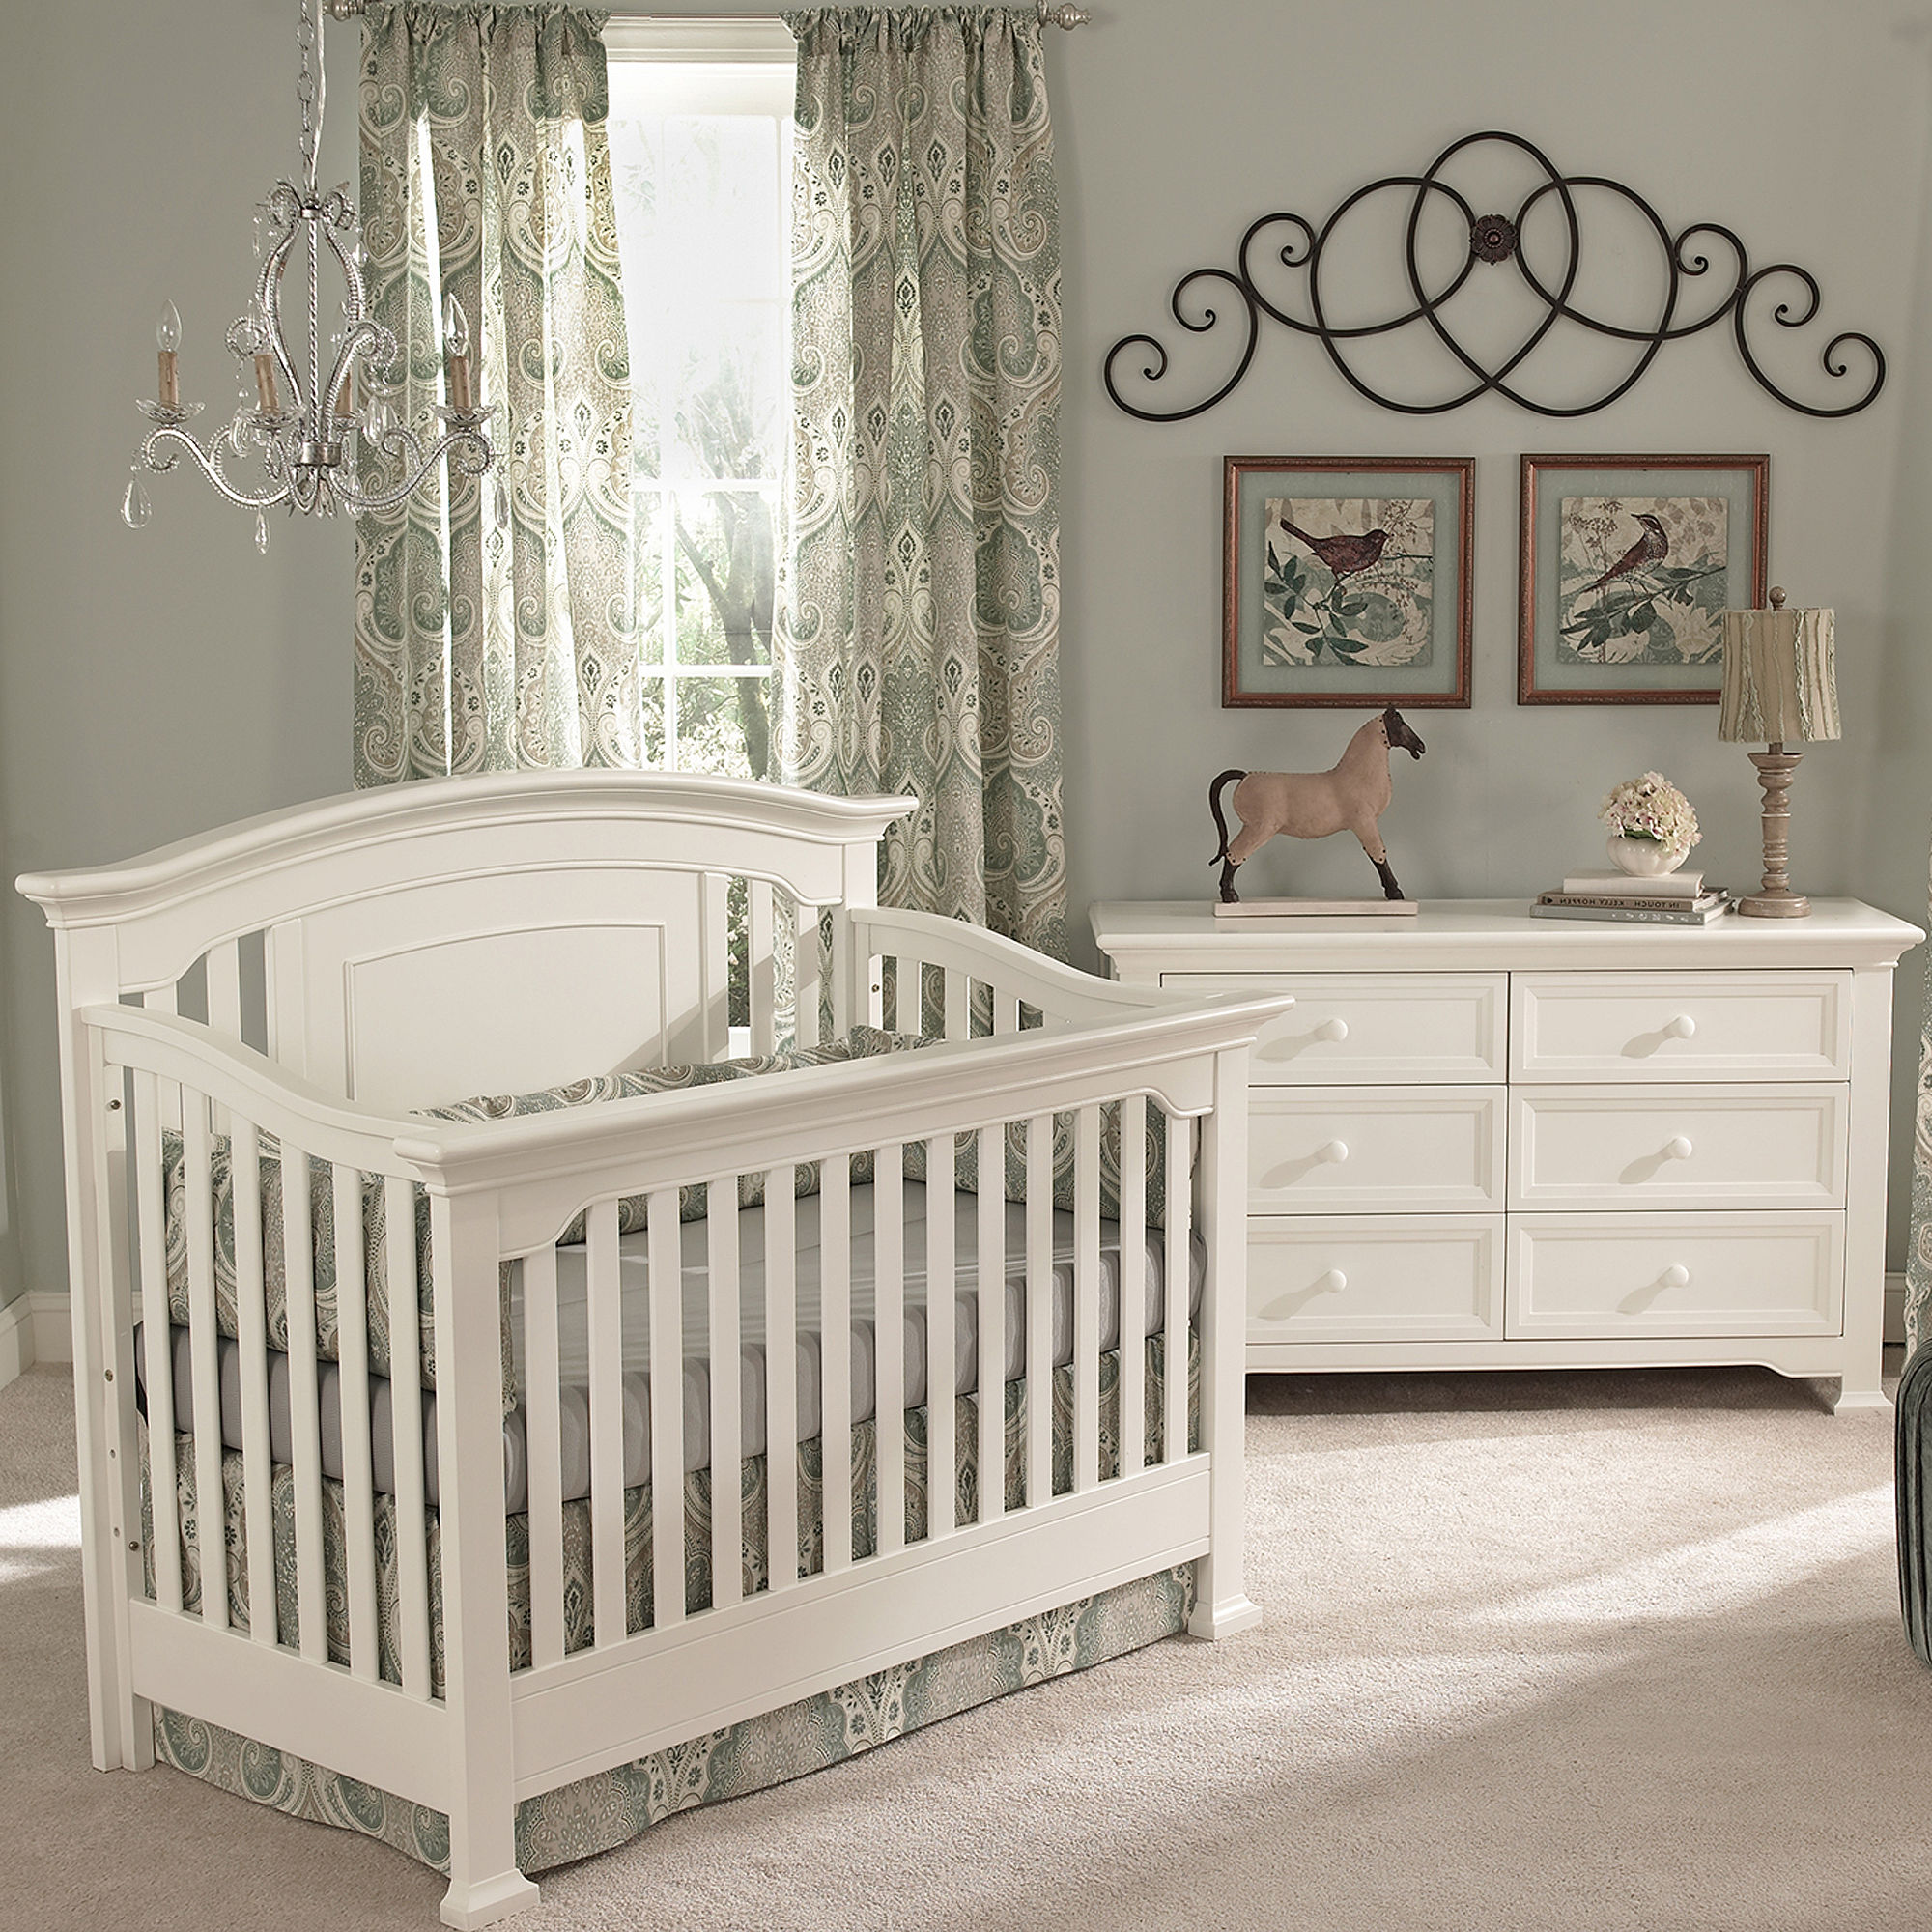 baby cribs best furniture design ideas jcpenney sets crib comforter with changing tables penney jcpenny bedding piece nursery convertible accent college room decor marble brass